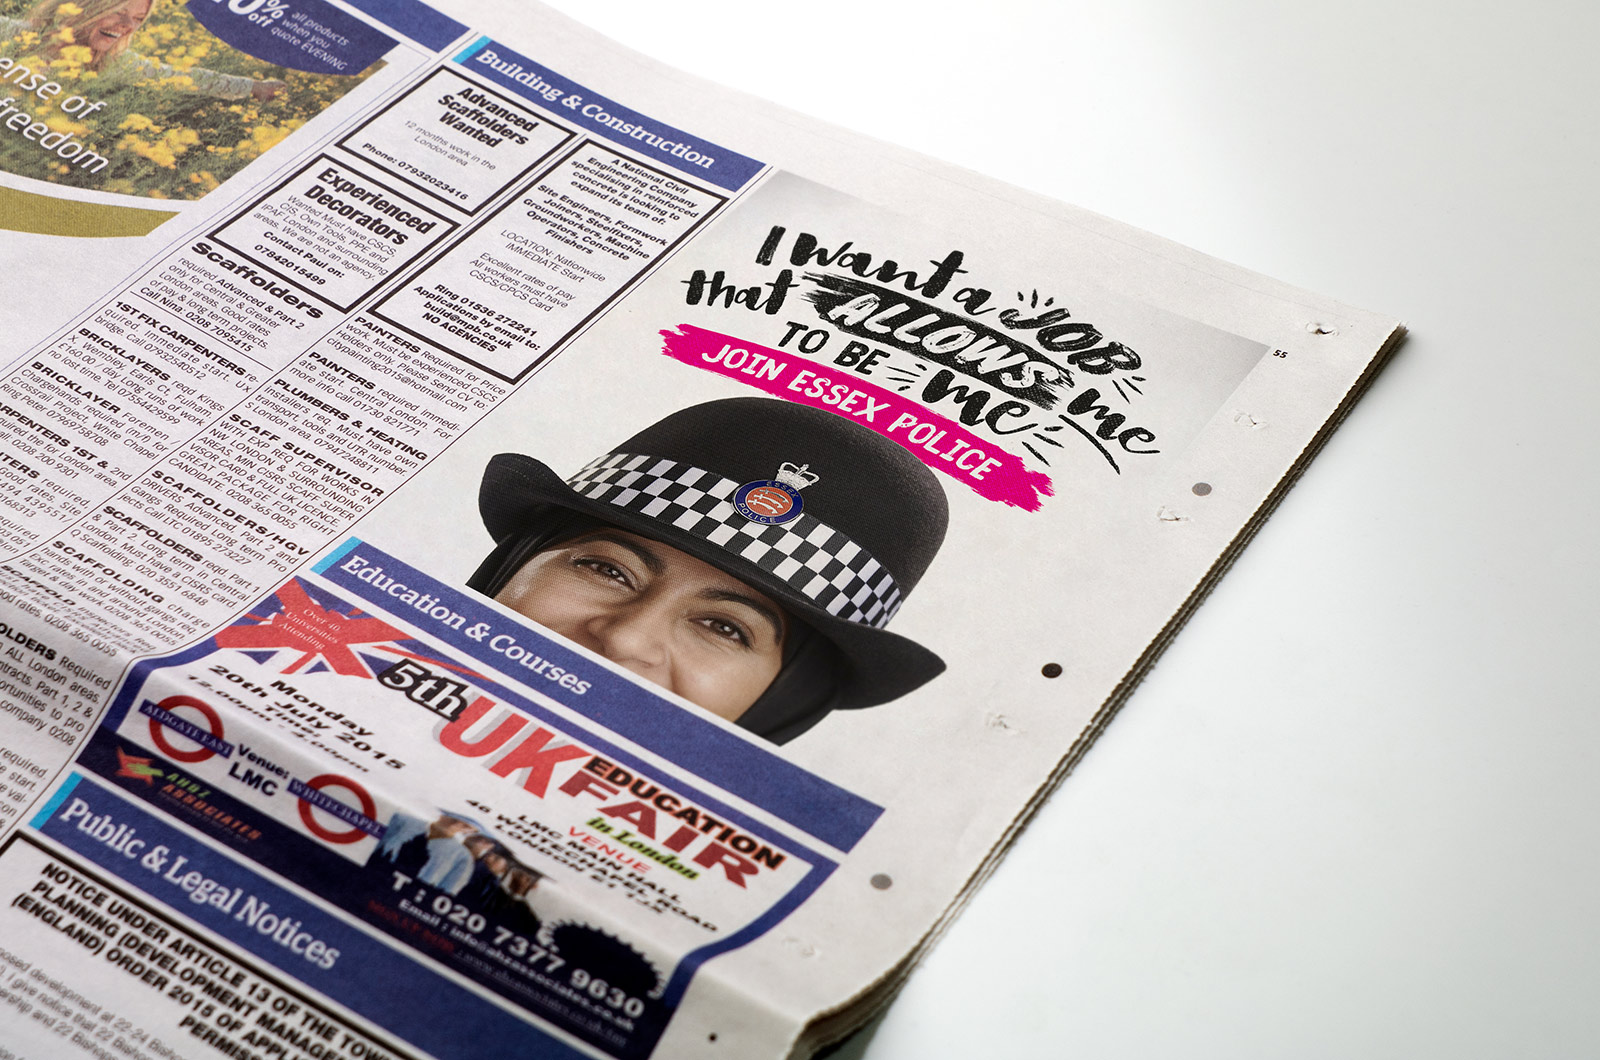 Essex Police recruitment advert in the newspaper